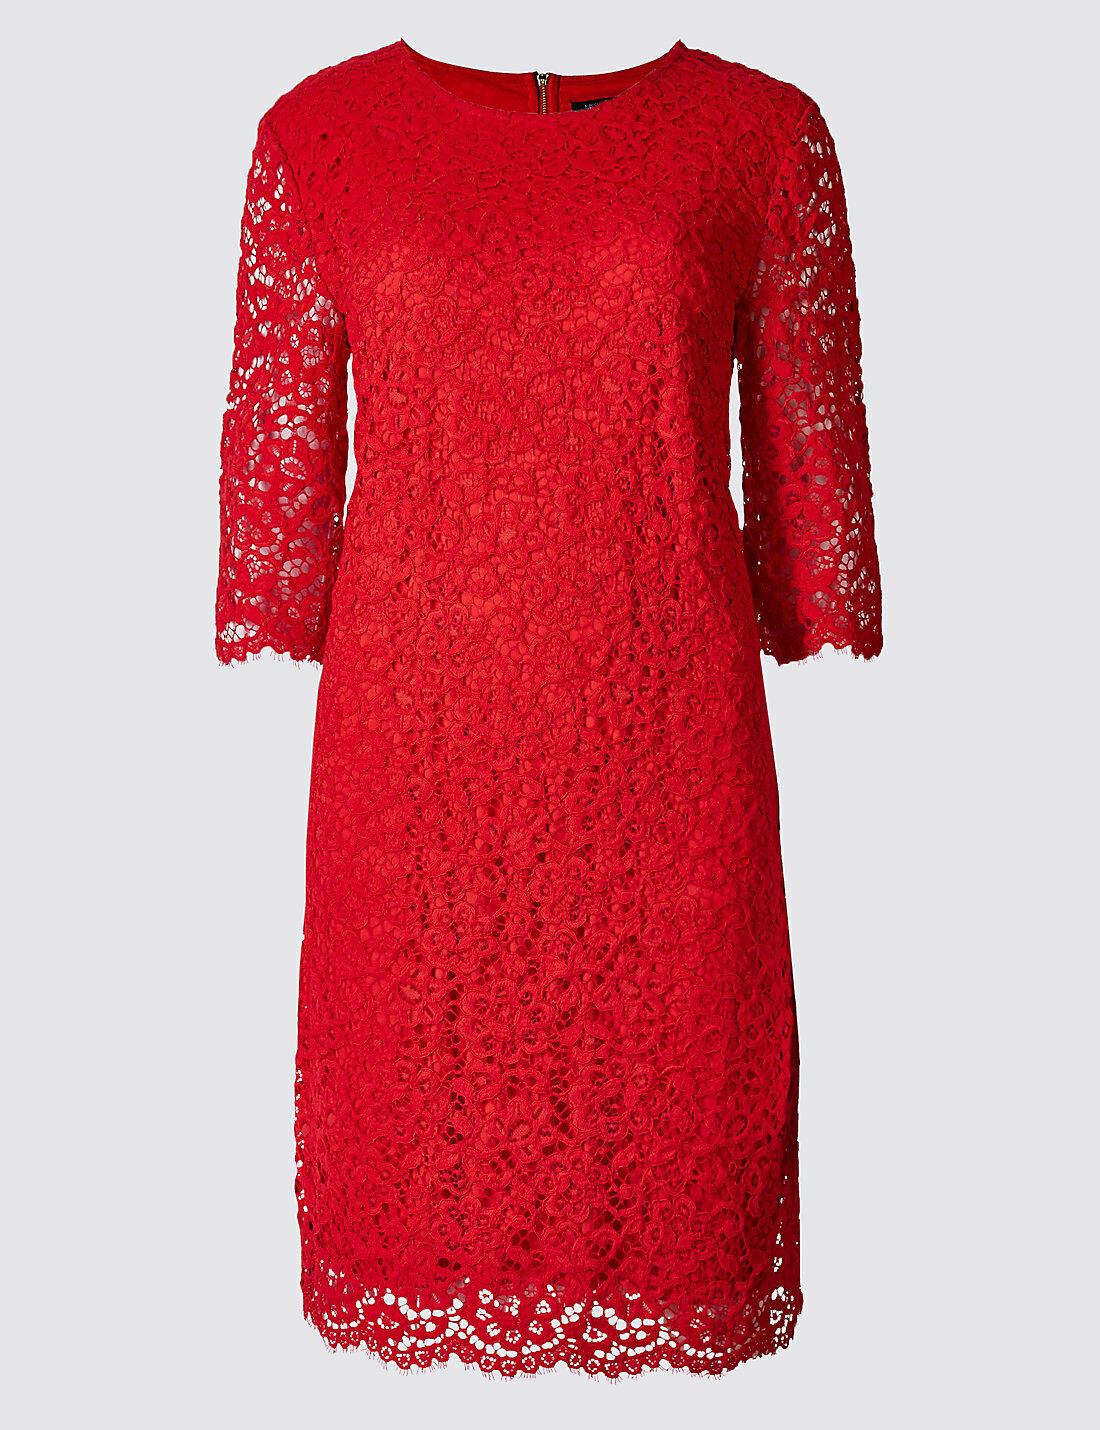 M&S COLLECTION Cotton Rich Lace Layered Tunic Dress PRP